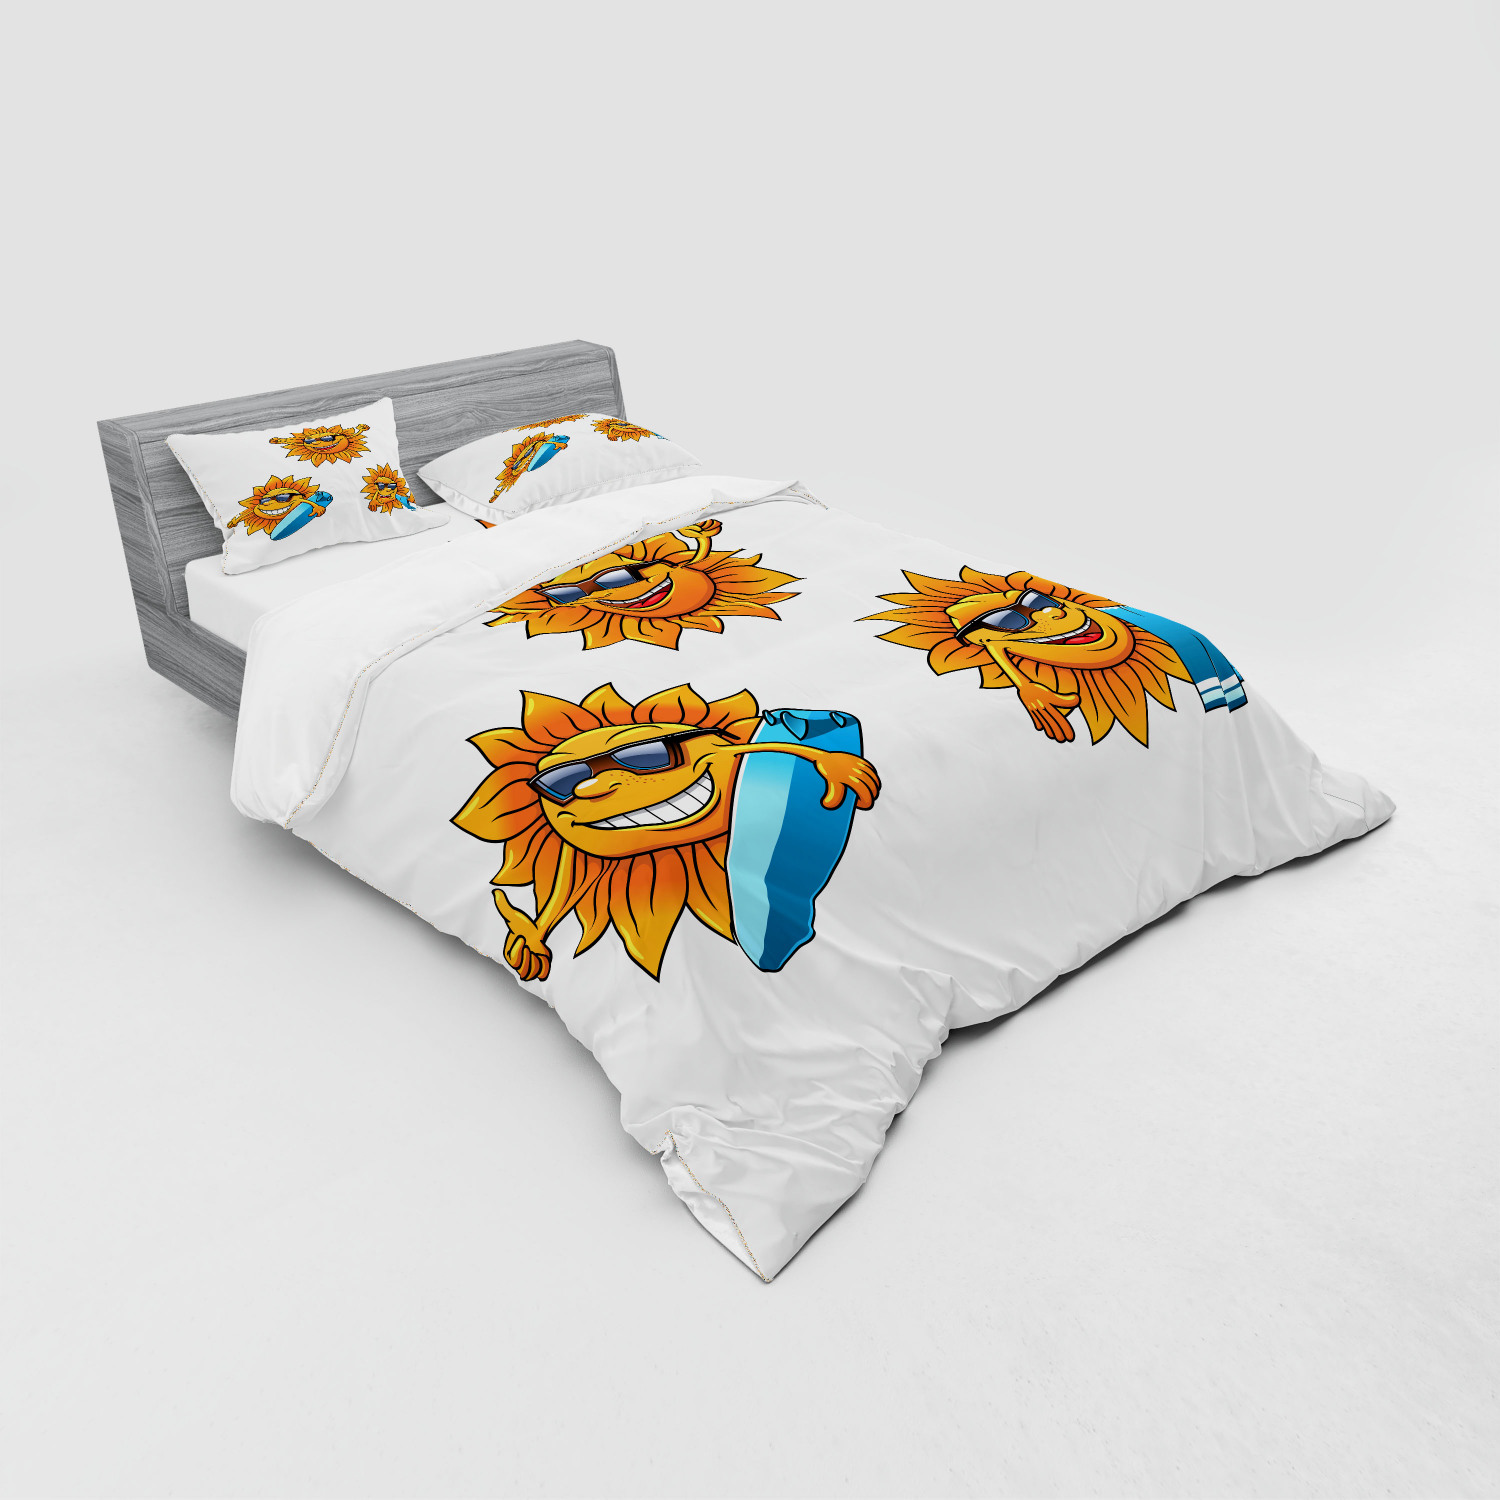 thumbnail 103 - Ambesonne Summer Bedding Set Duvet Cover Sham Fitted Sheet in 3 Sizes